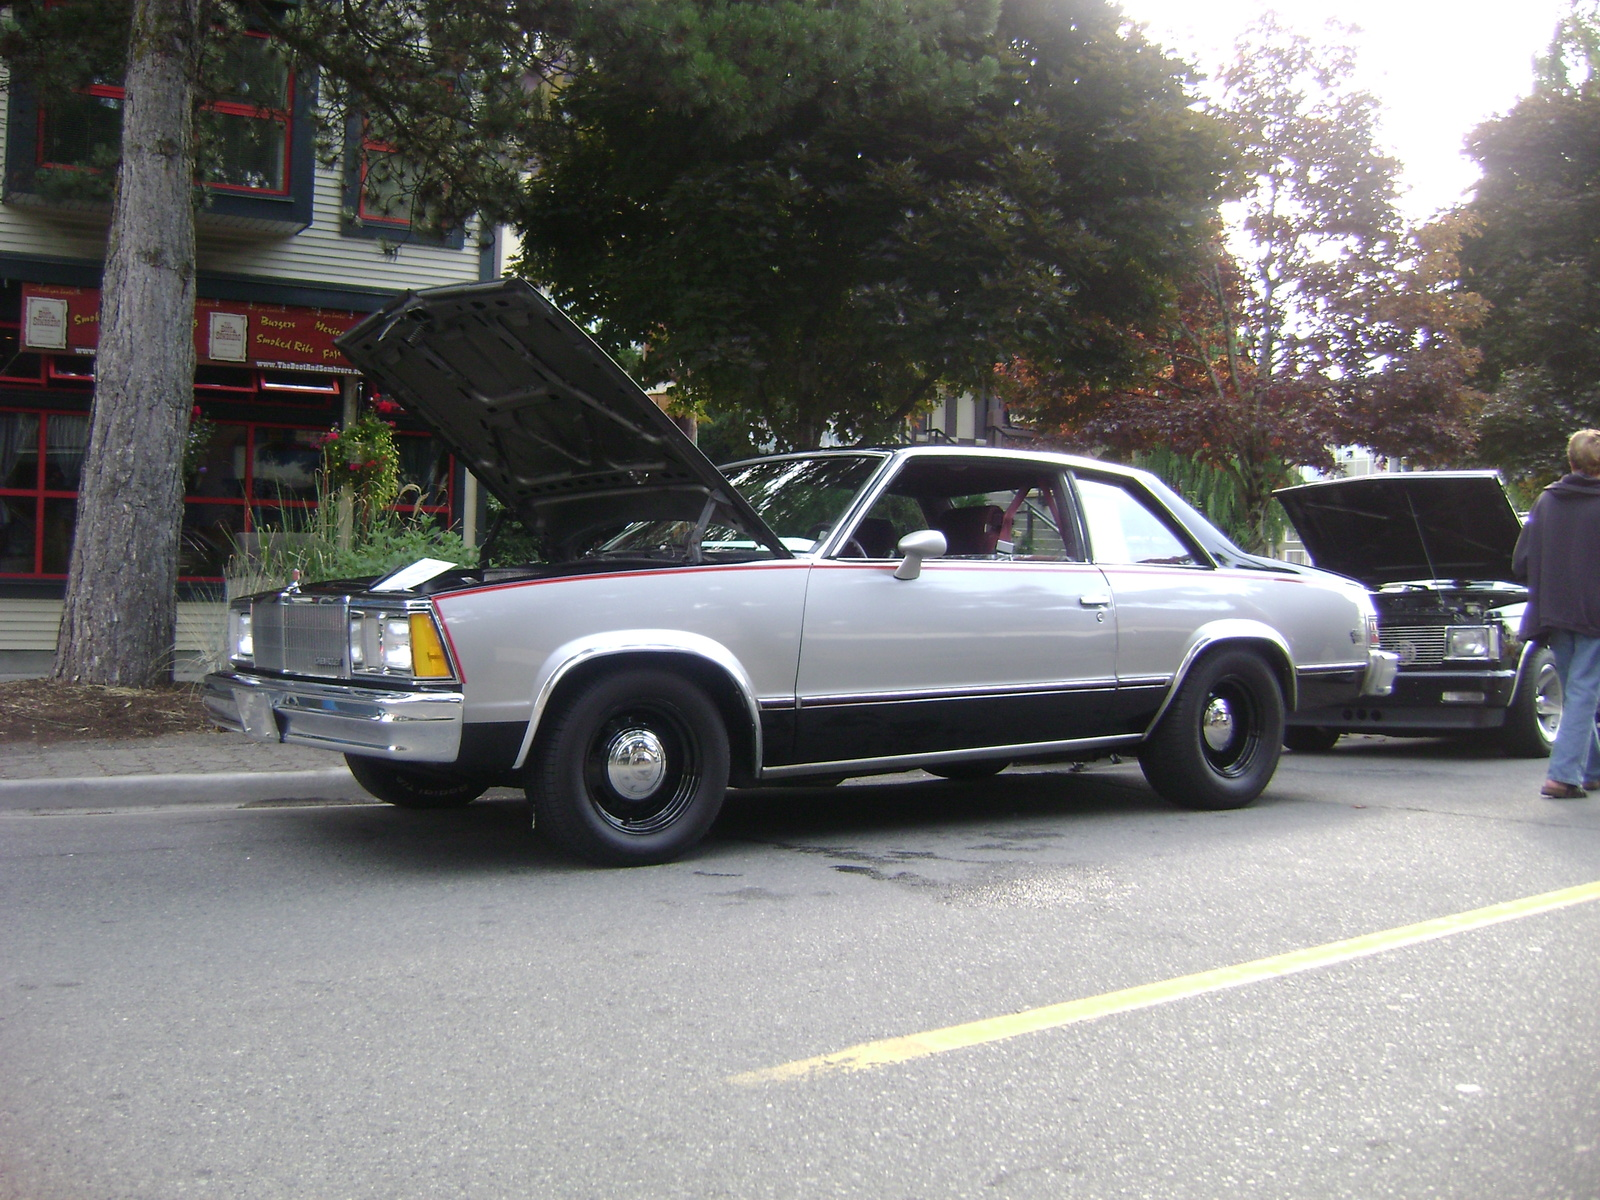 1980 chevrolet malibu pictures picture picture to pin on pinterest thepinsta. Black Bedroom Furniture Sets. Home Design Ideas